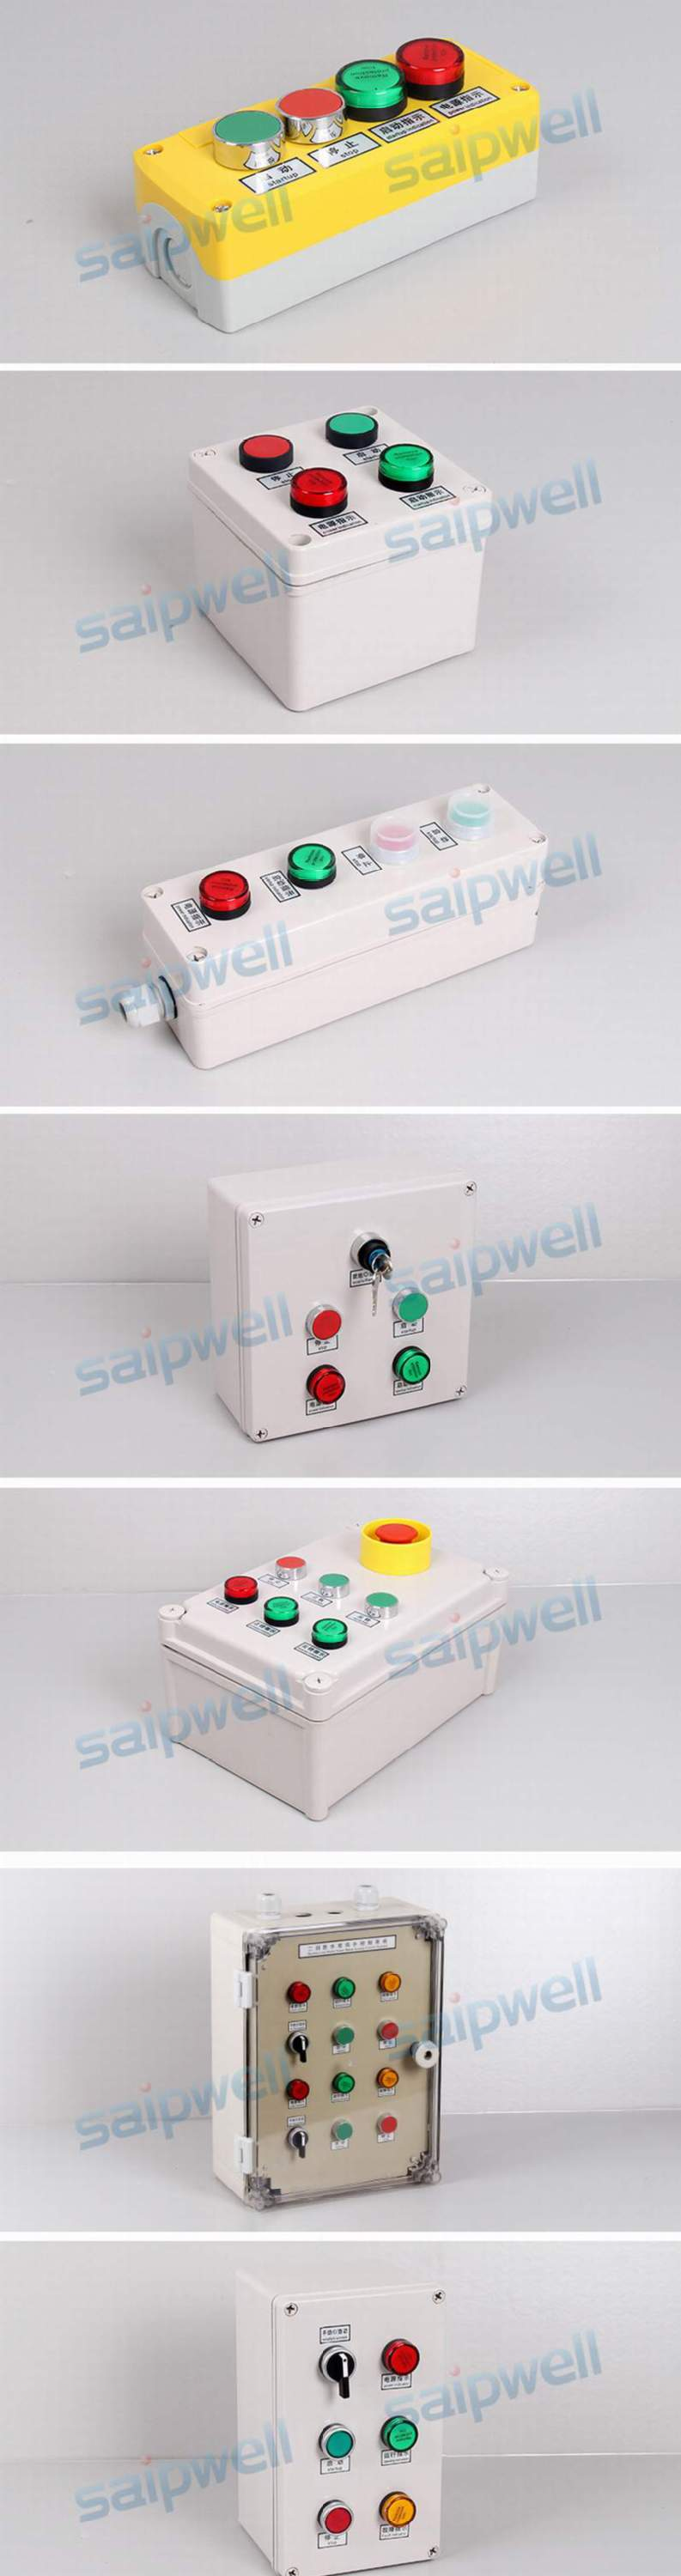 Saip Saipwell Newest Two Position Turn Button Waterproof Electrical Metal Circuit Push Buttons Lamp